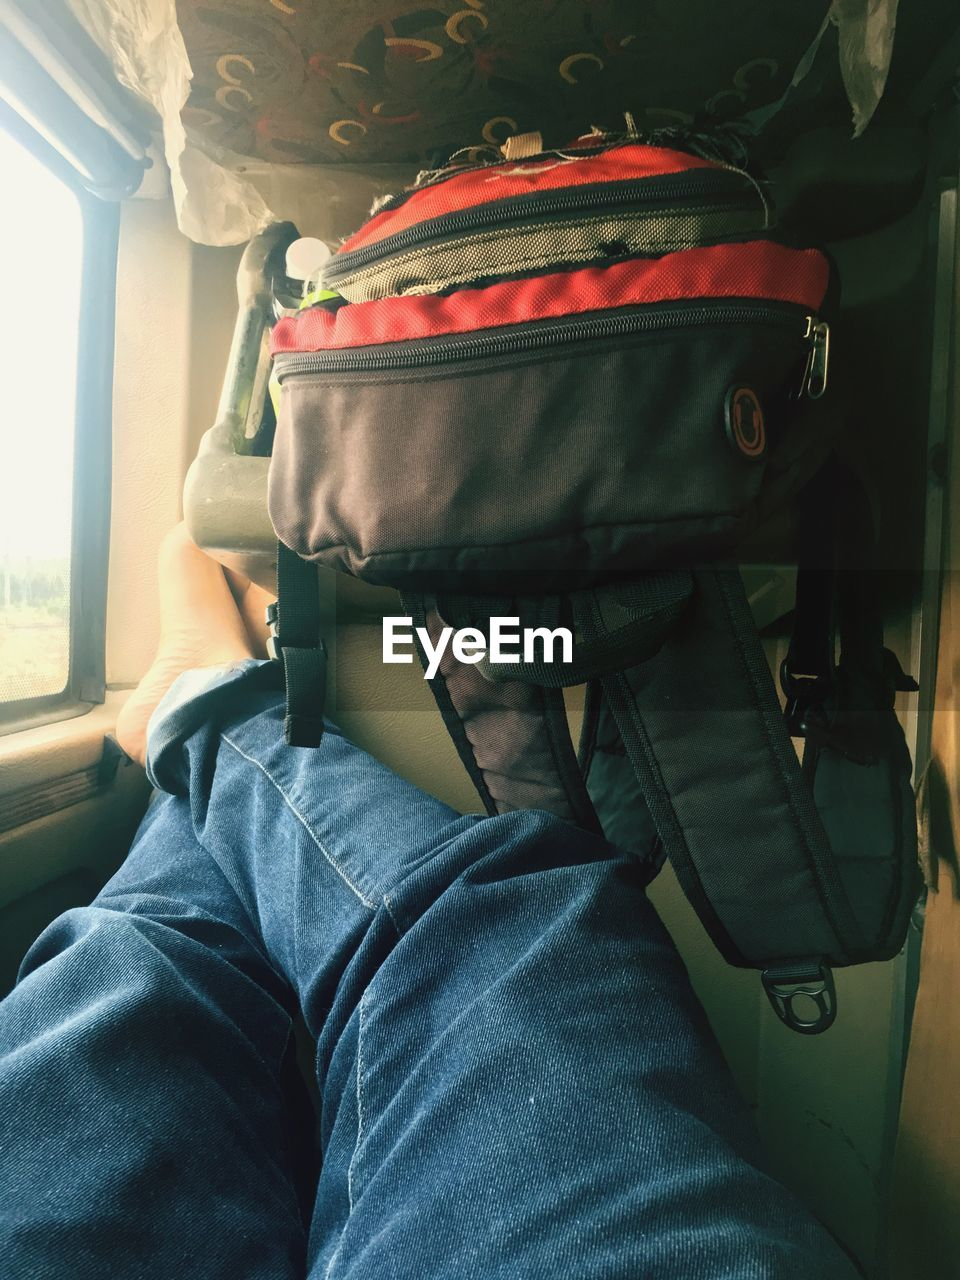 Midsection of man with luggage sitting in train